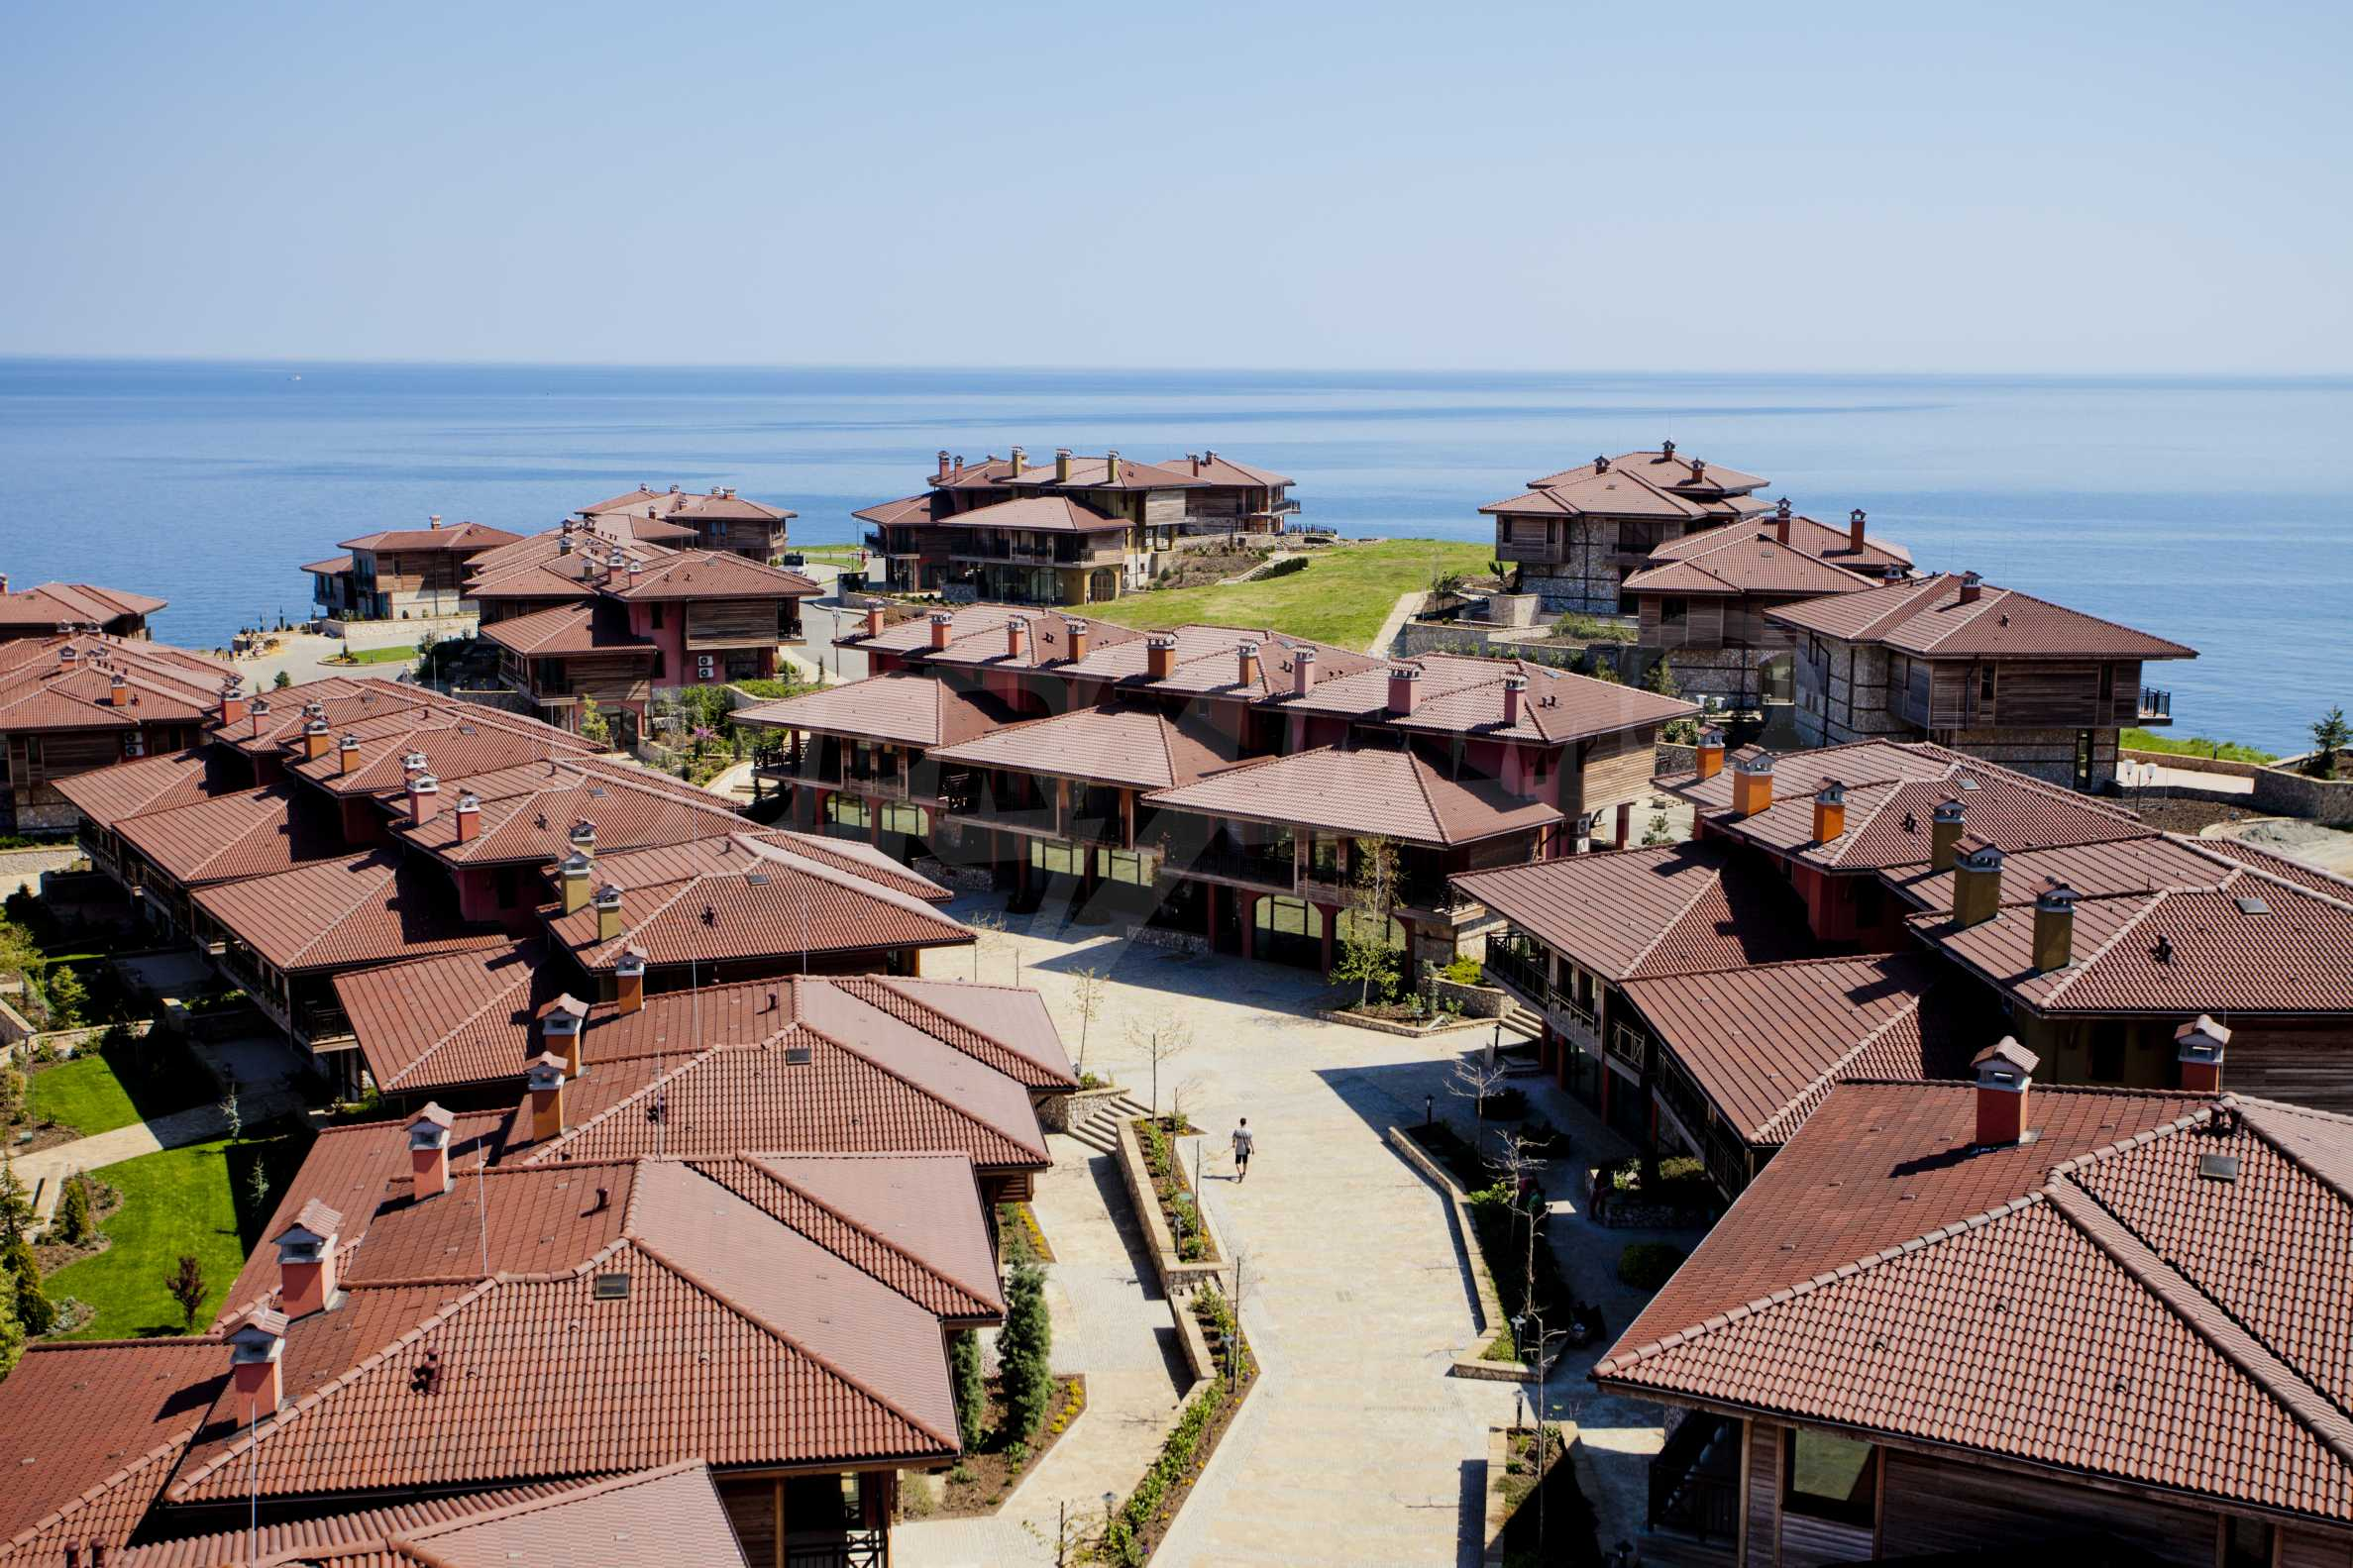 Sozopolis - unique coastal complex of townhouses and apartments near Sozopol 52